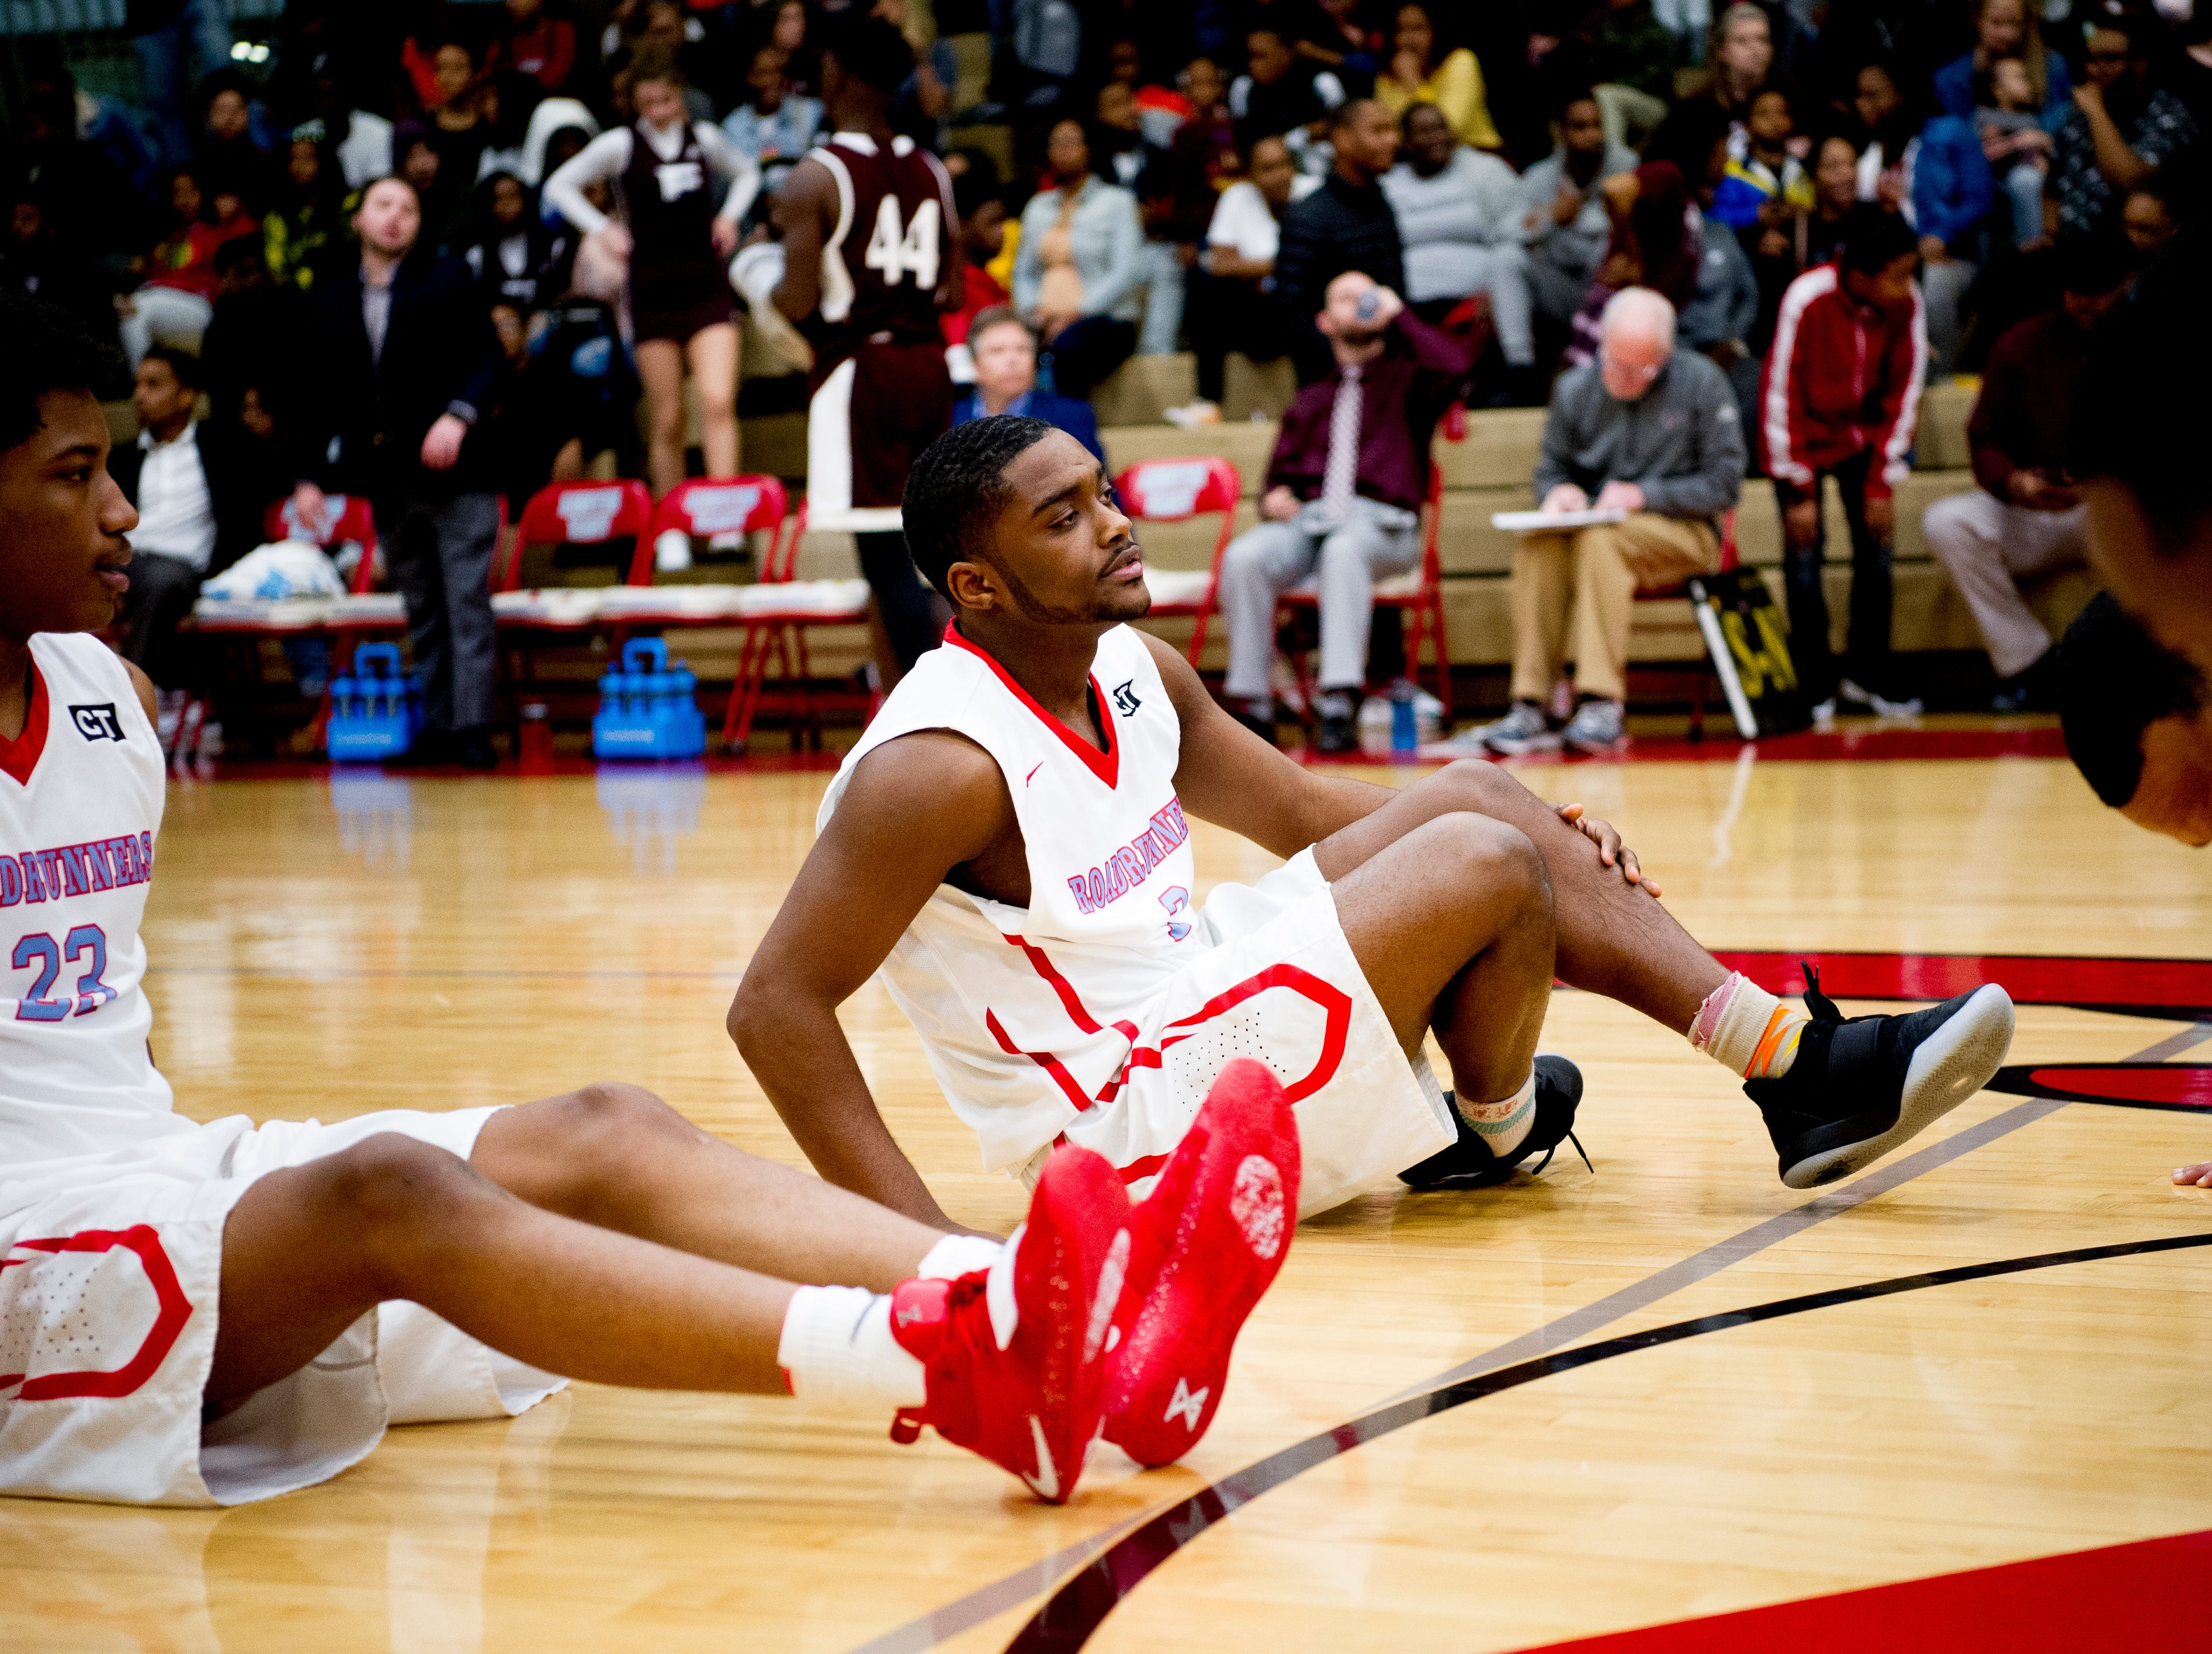 Austin-East's Shiyaun Jackson (2) stretches with team mates during a game between Austin-East and Fulton at Austin-East High School in Knoxville, Tennessee on Saturday, January 5, 2019.